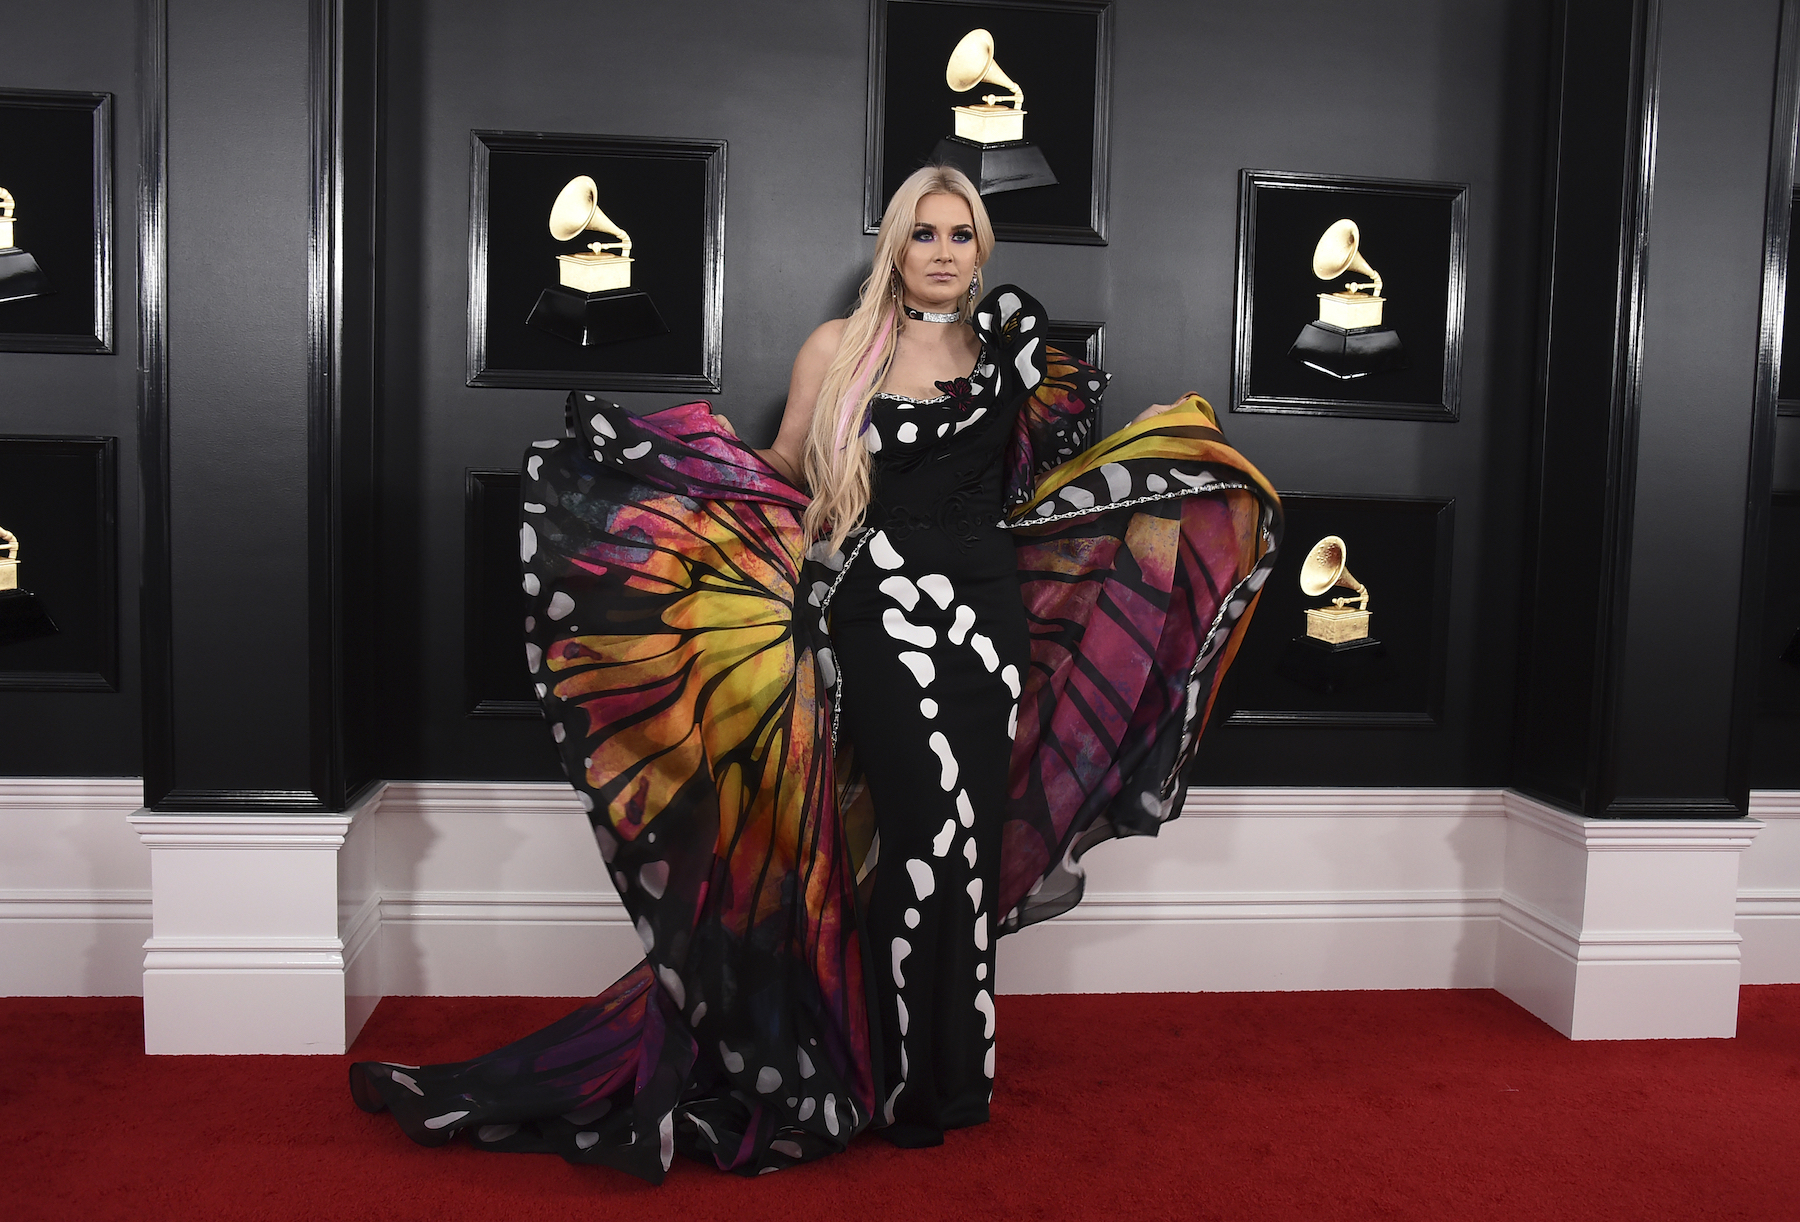 <div class='meta'><div class='origin-logo' data-origin='AP'></div><span class='caption-text' data-credit='Jordan Strauss/Invision/AP'>Saint Heart arrives at the 61st annual Grammy Awards at the Staples Center on Sunday, Feb. 10, 2019, in Los Angeles.</span></div>